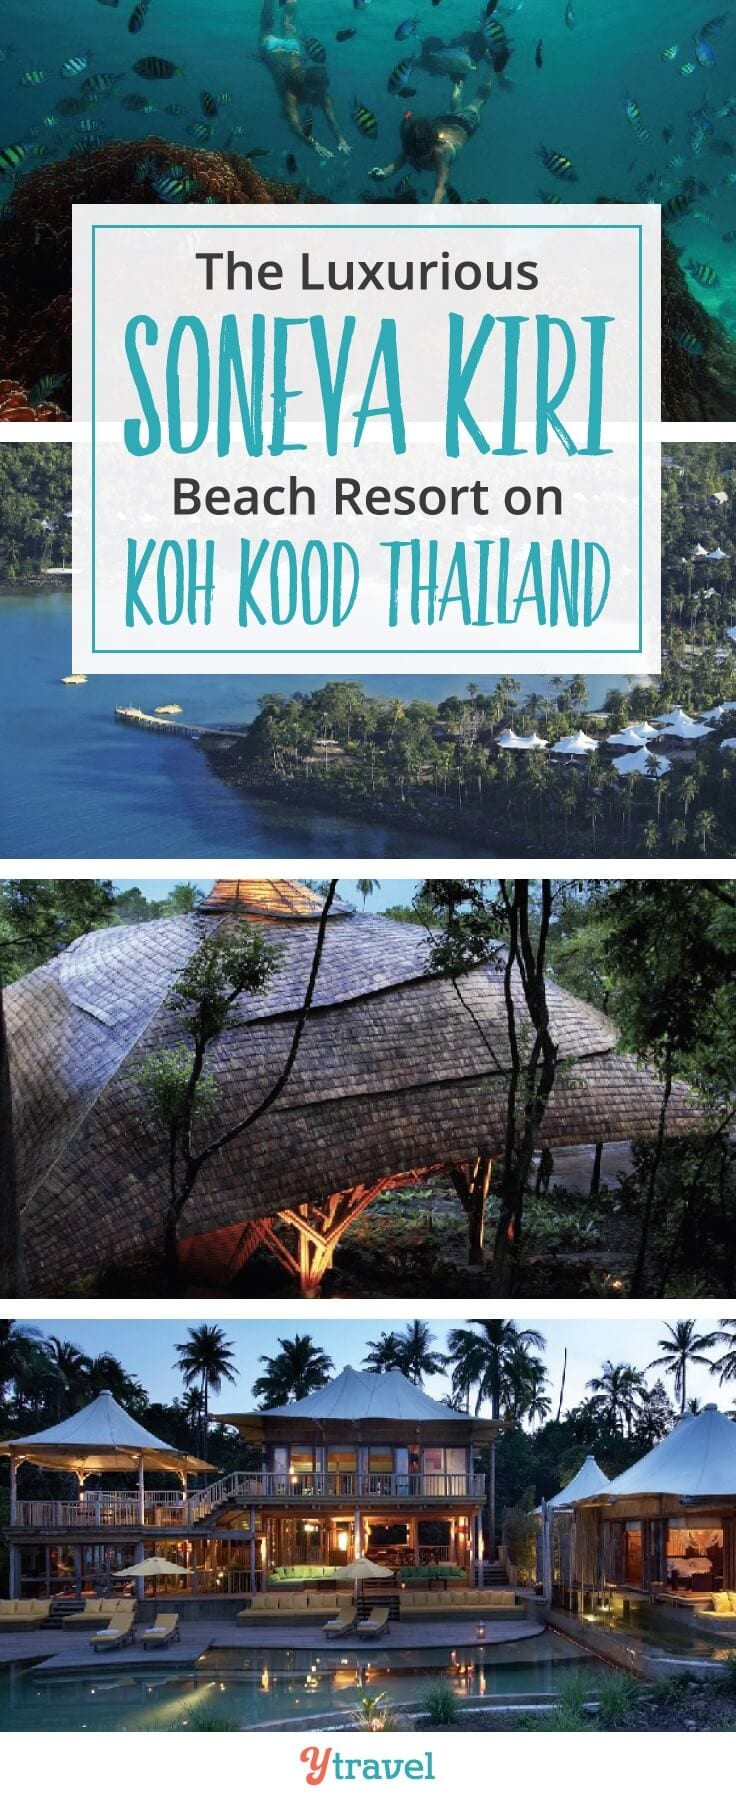 Want an unspoilt Thai island location? We've found the perfect Koh Kood Beach resort for families. Yes, it's a luxury resort! The Soneva Kiri Beach Resort on Ko Kood Thailand is just the family escape you've been dreaming of. #Thailand #KohKood #familytravel #luxurytravel #resorts